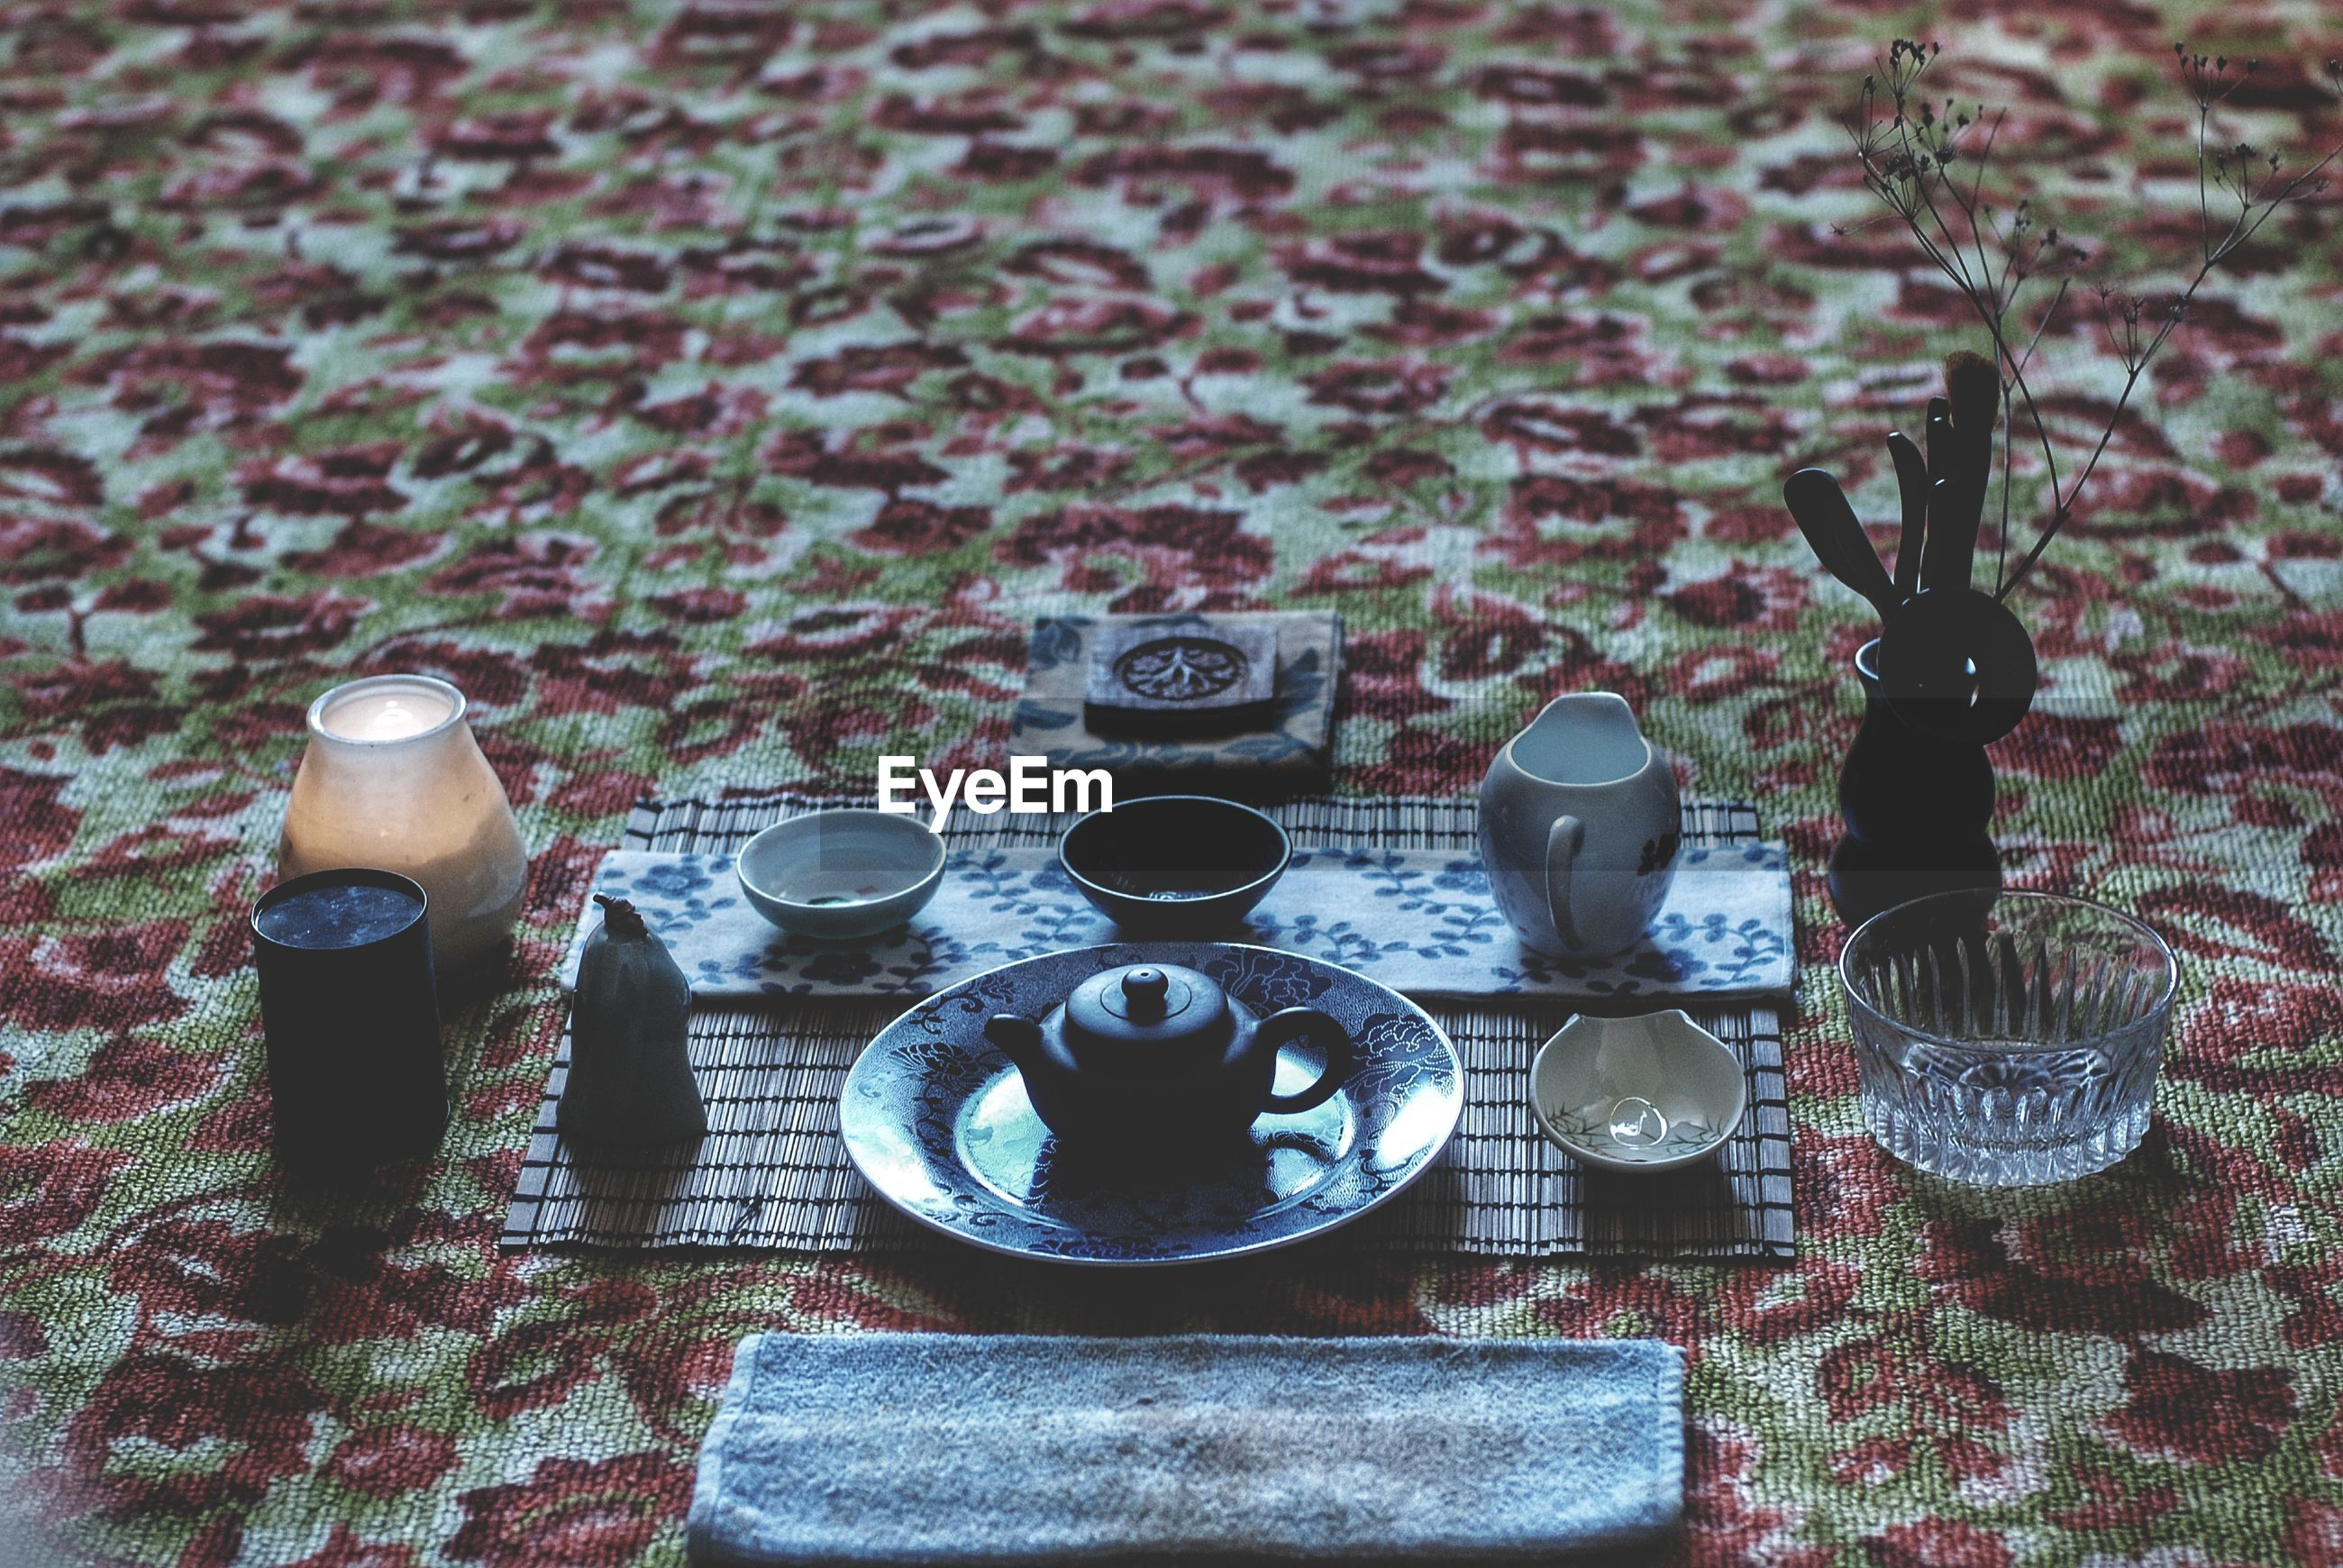 High angle view of crockery arranged on carpet during tea ceremony